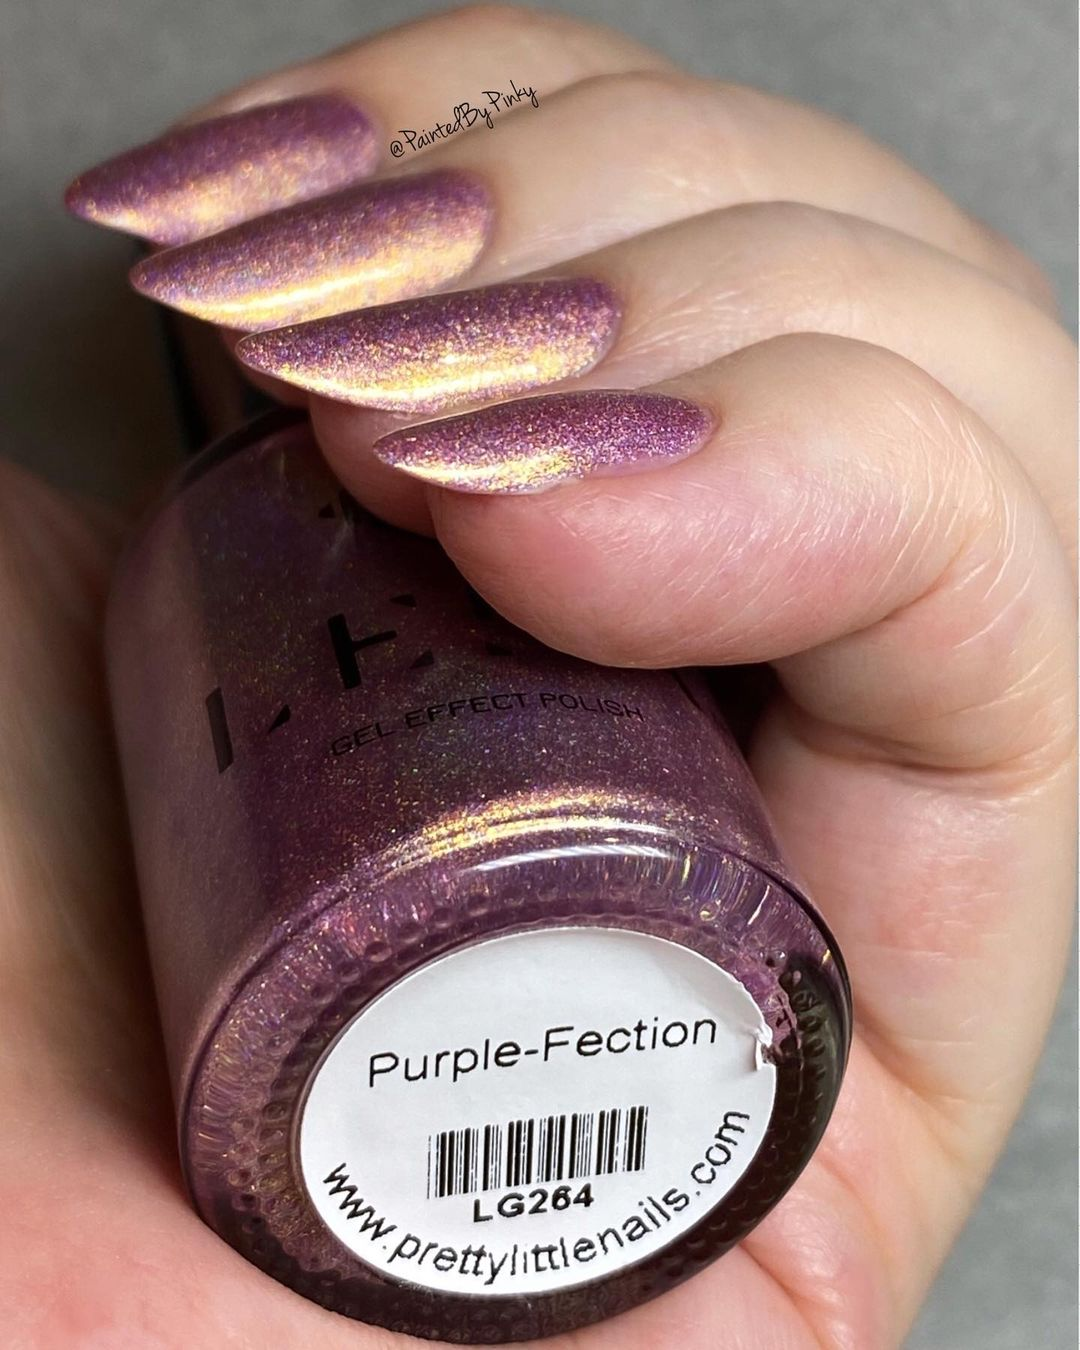 Purple-Fection - Gel Effect Nail Polish - LG264